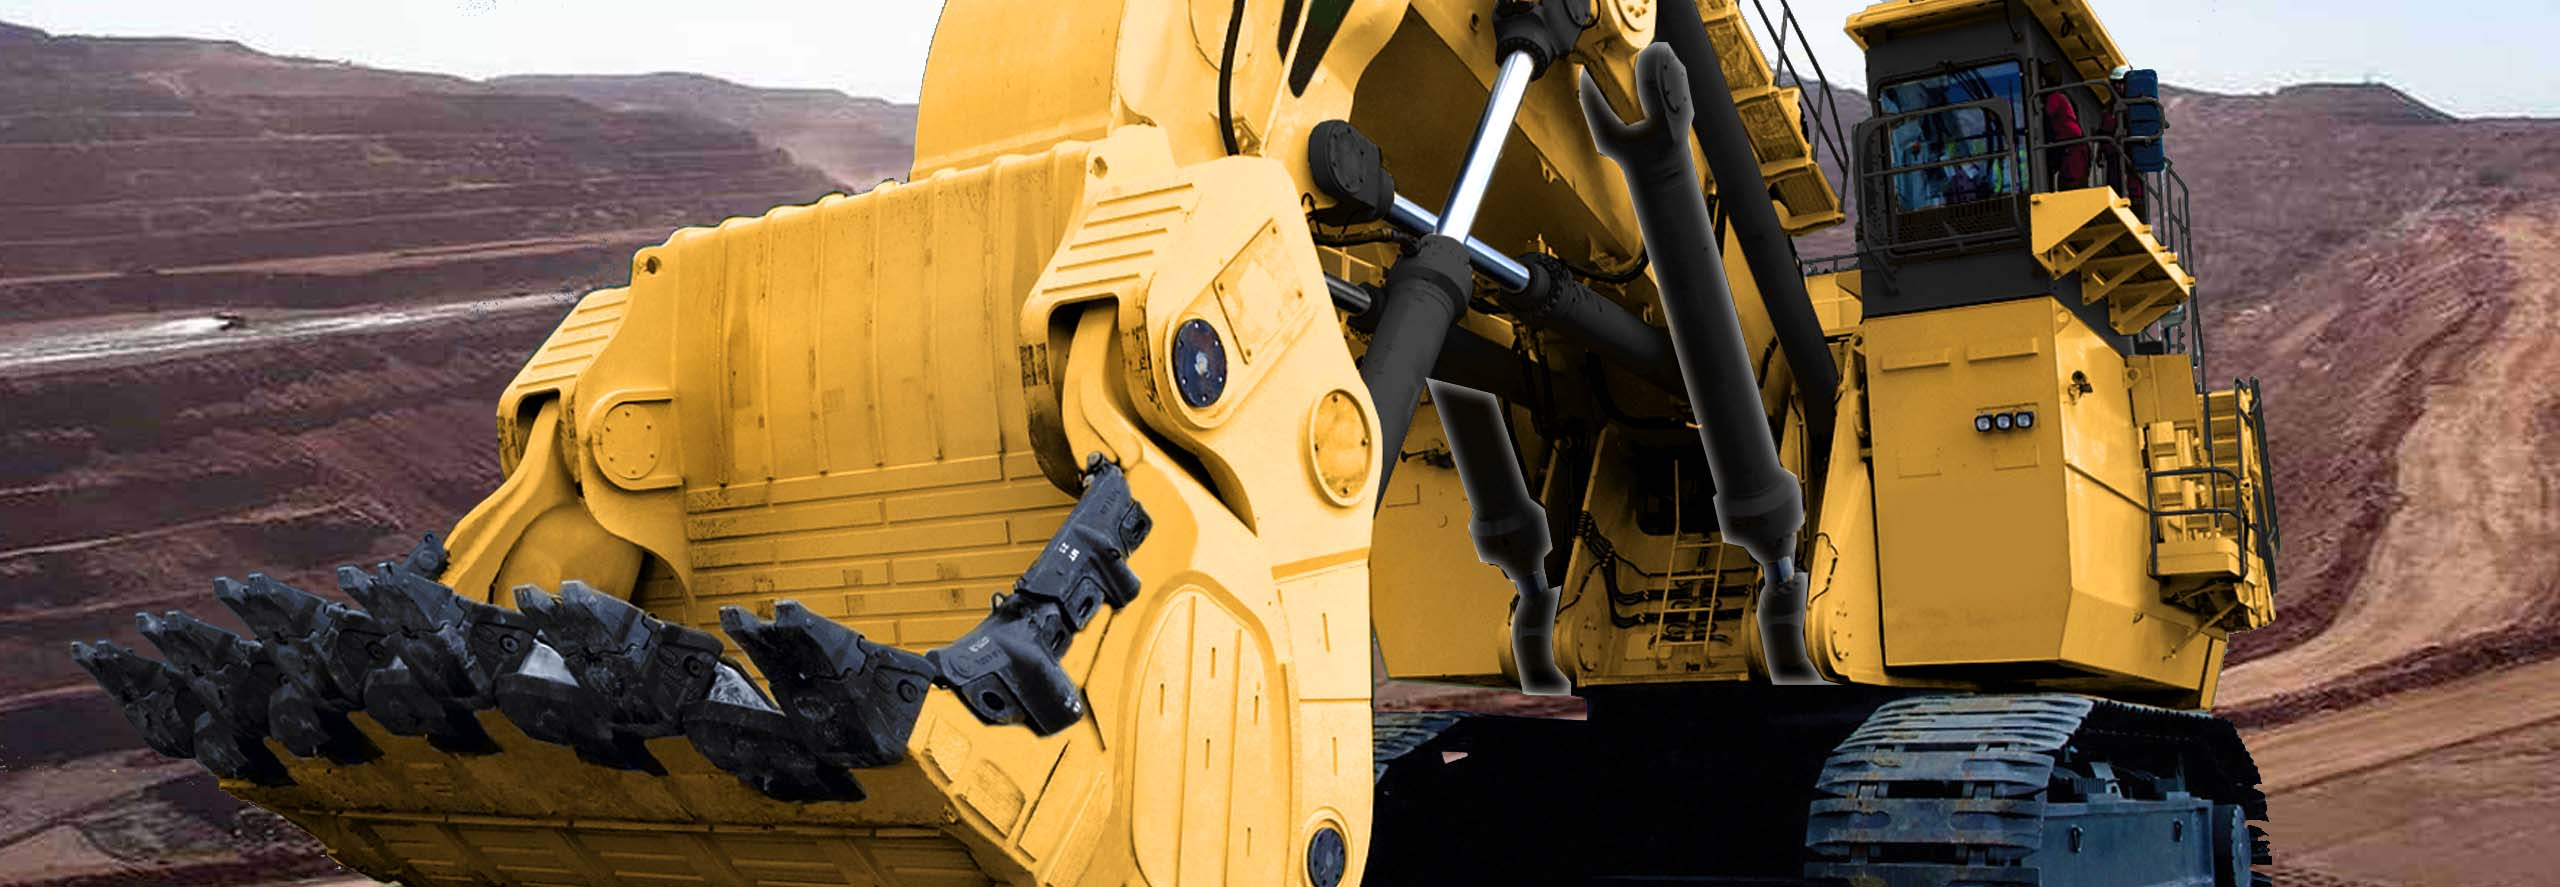 Cat 6060 Excavator at iron ore site